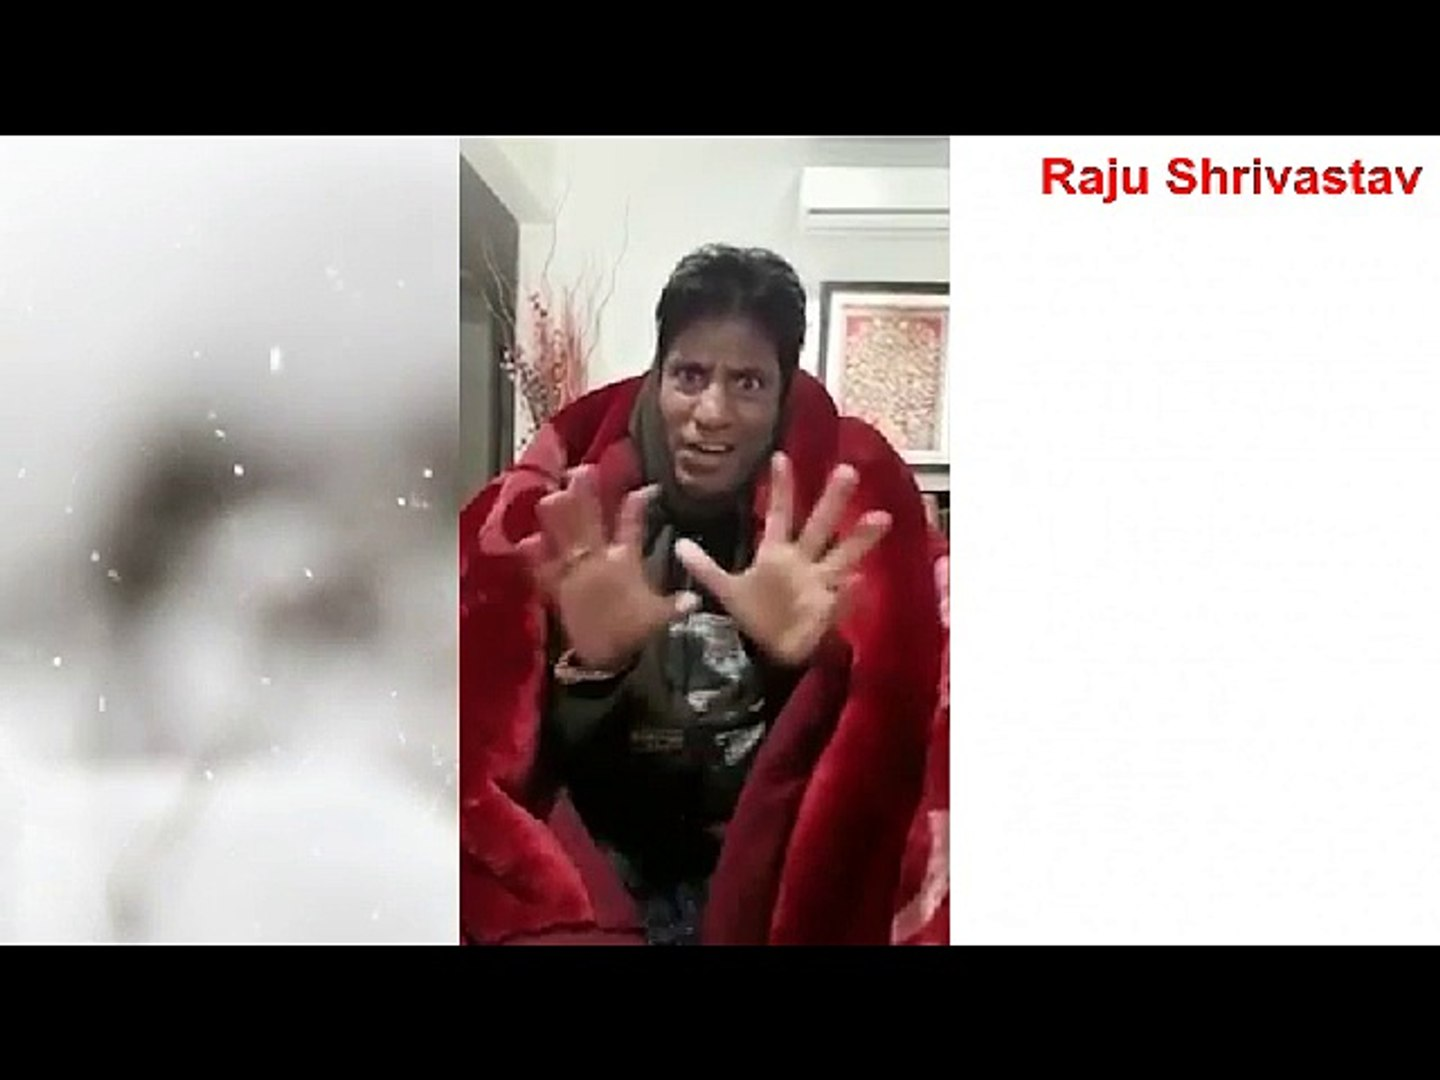 Raju Shrivastav comedy - Stand Up Comedy - Viral Funny Comedy - Indian Comedy